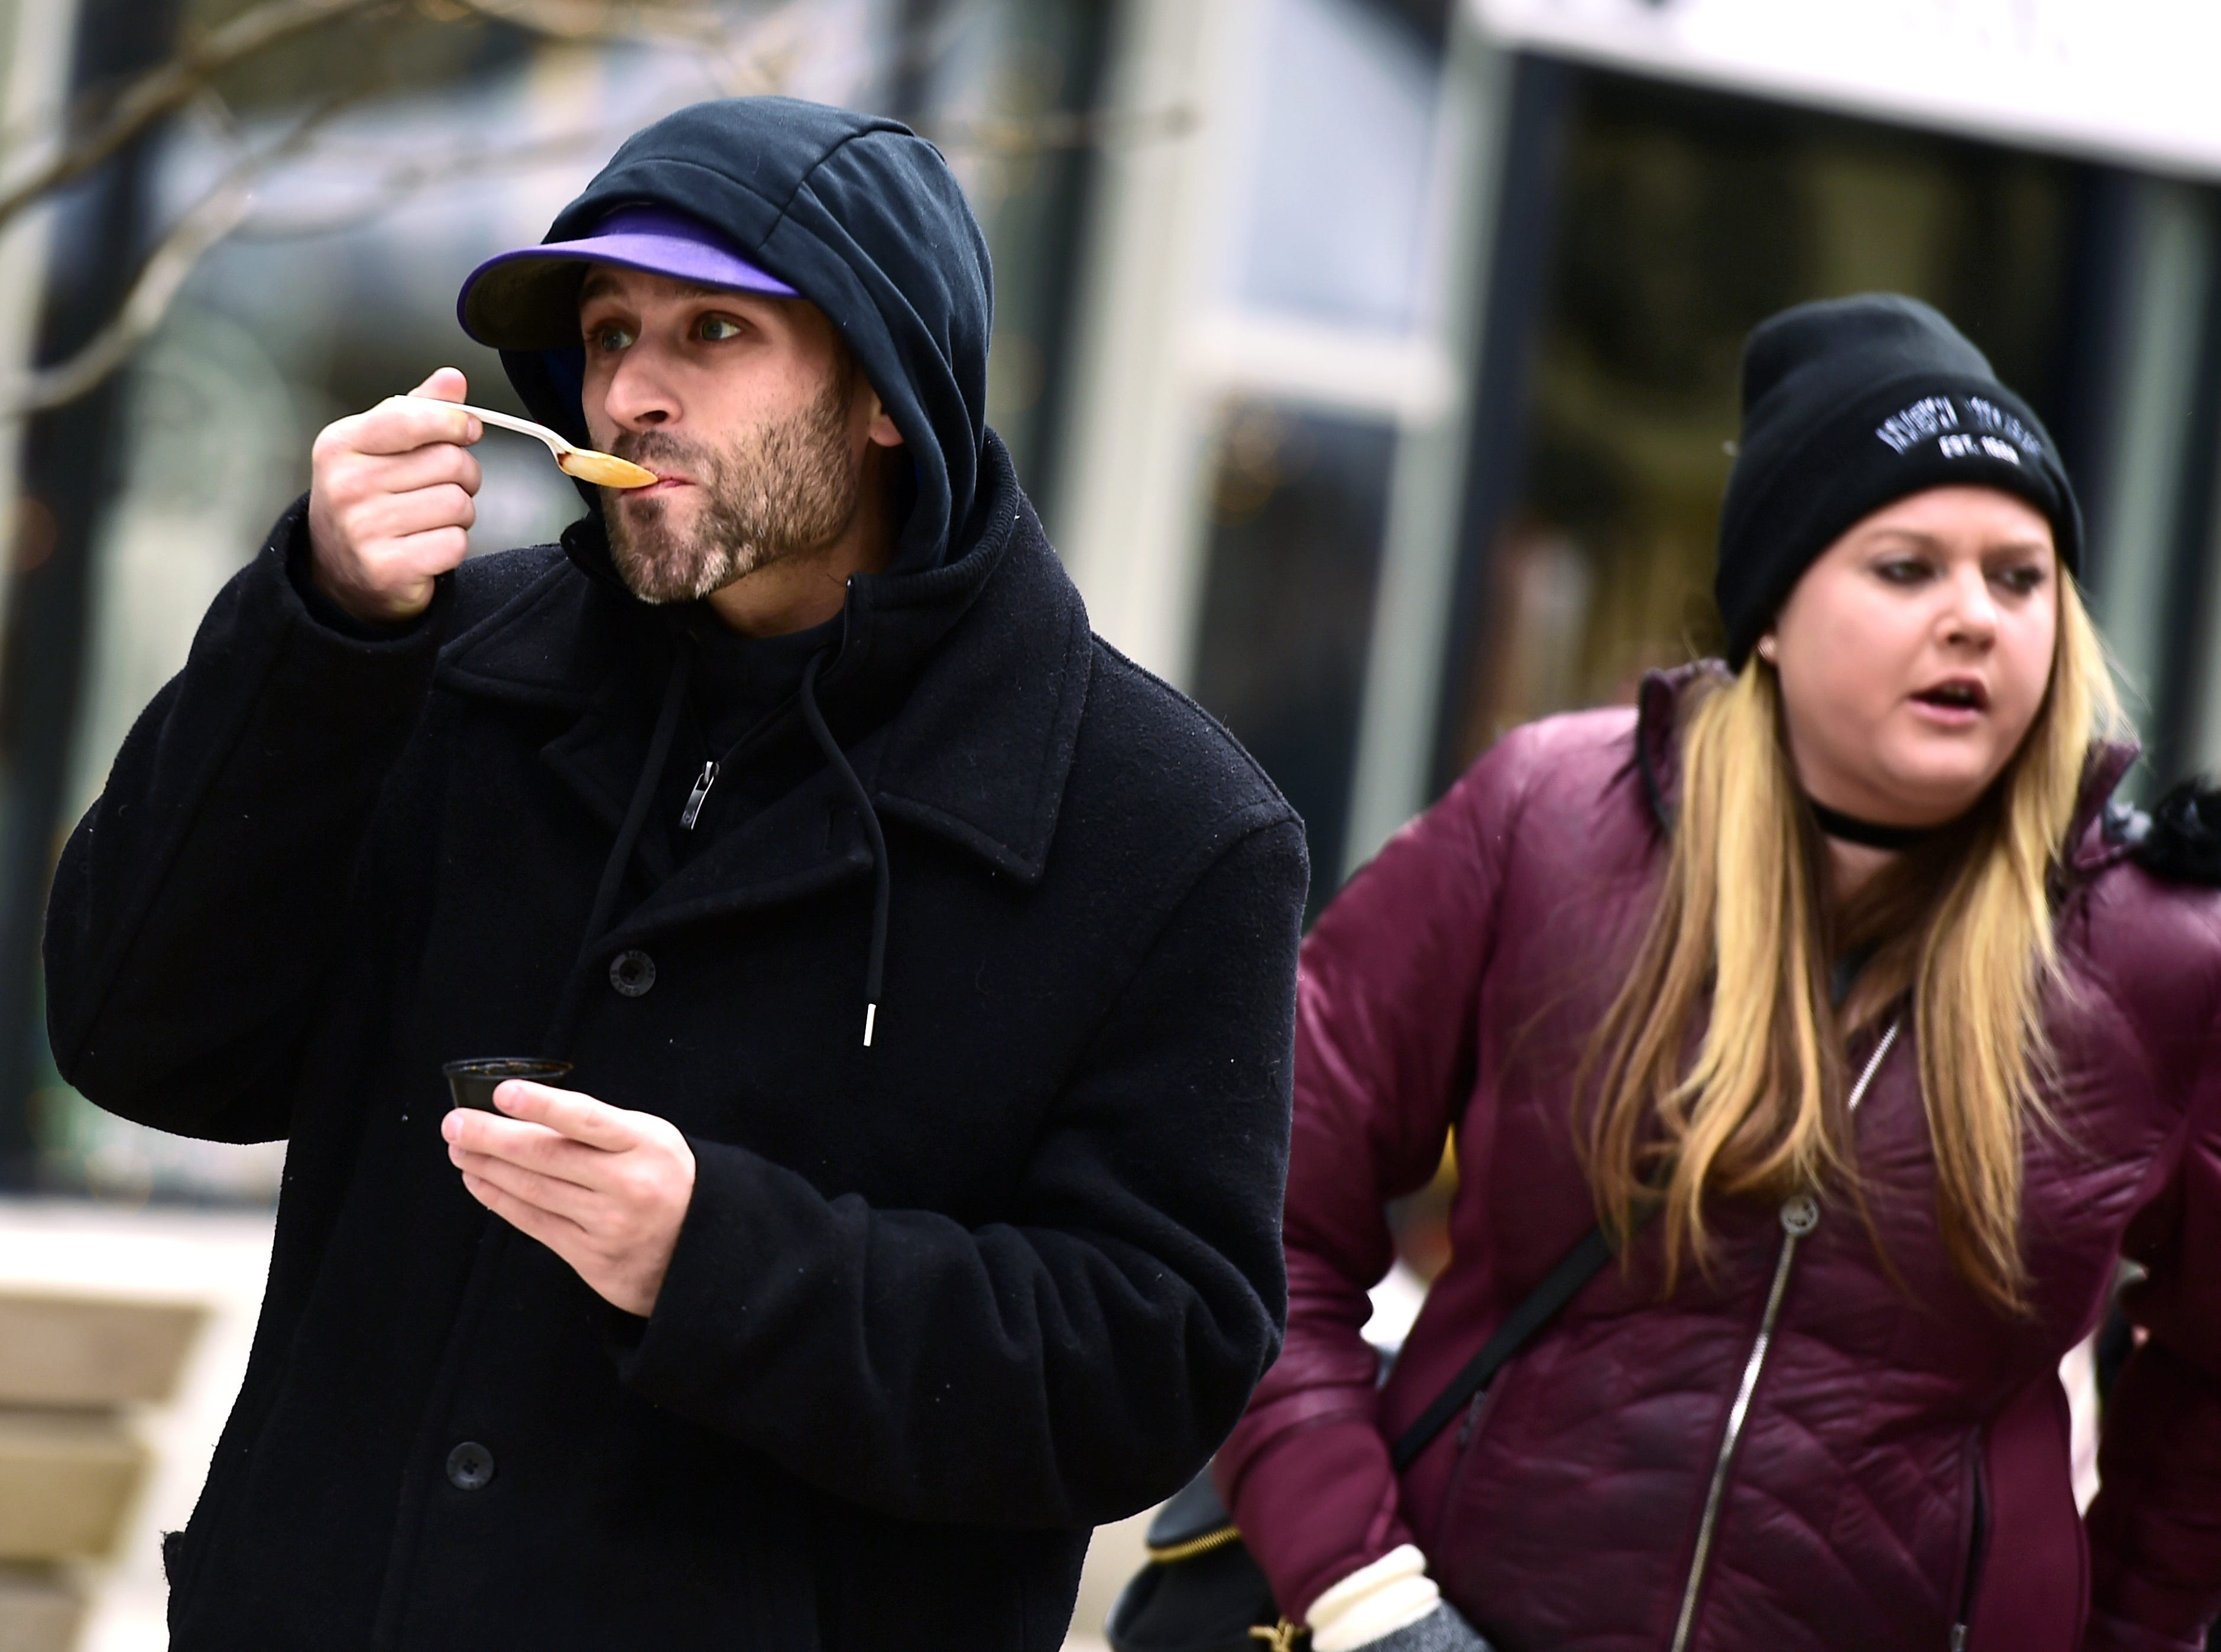 The 21st Annual Downtown Ithaca Chili Cook-off was held on the Commons on Saturday. The event featured unique meat, vegetarian and vegan chilis made by local restaurants. February 8, 2019.